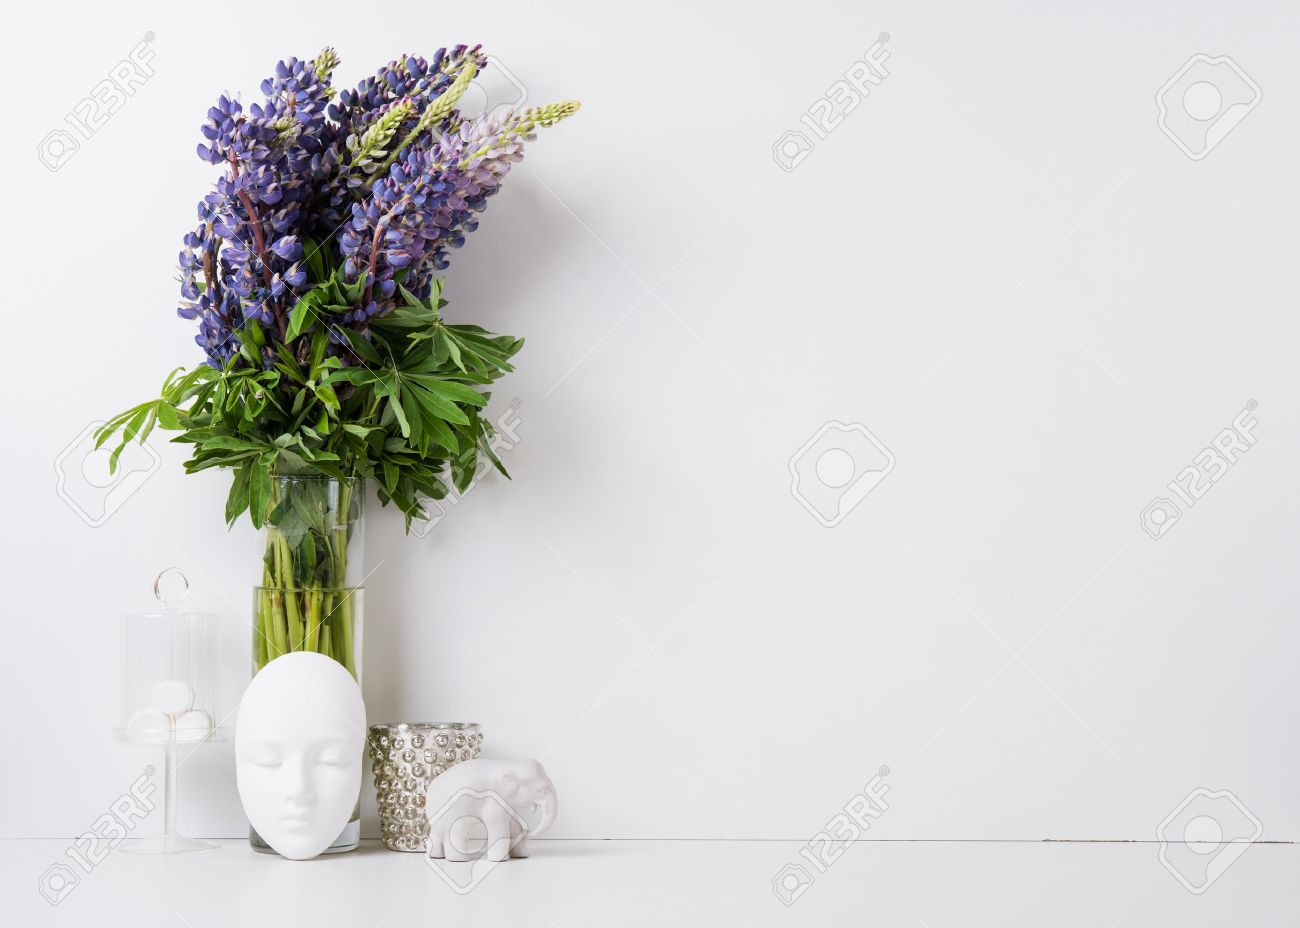 Modern home decor with flowers and interior objects, design ready background - 57907835